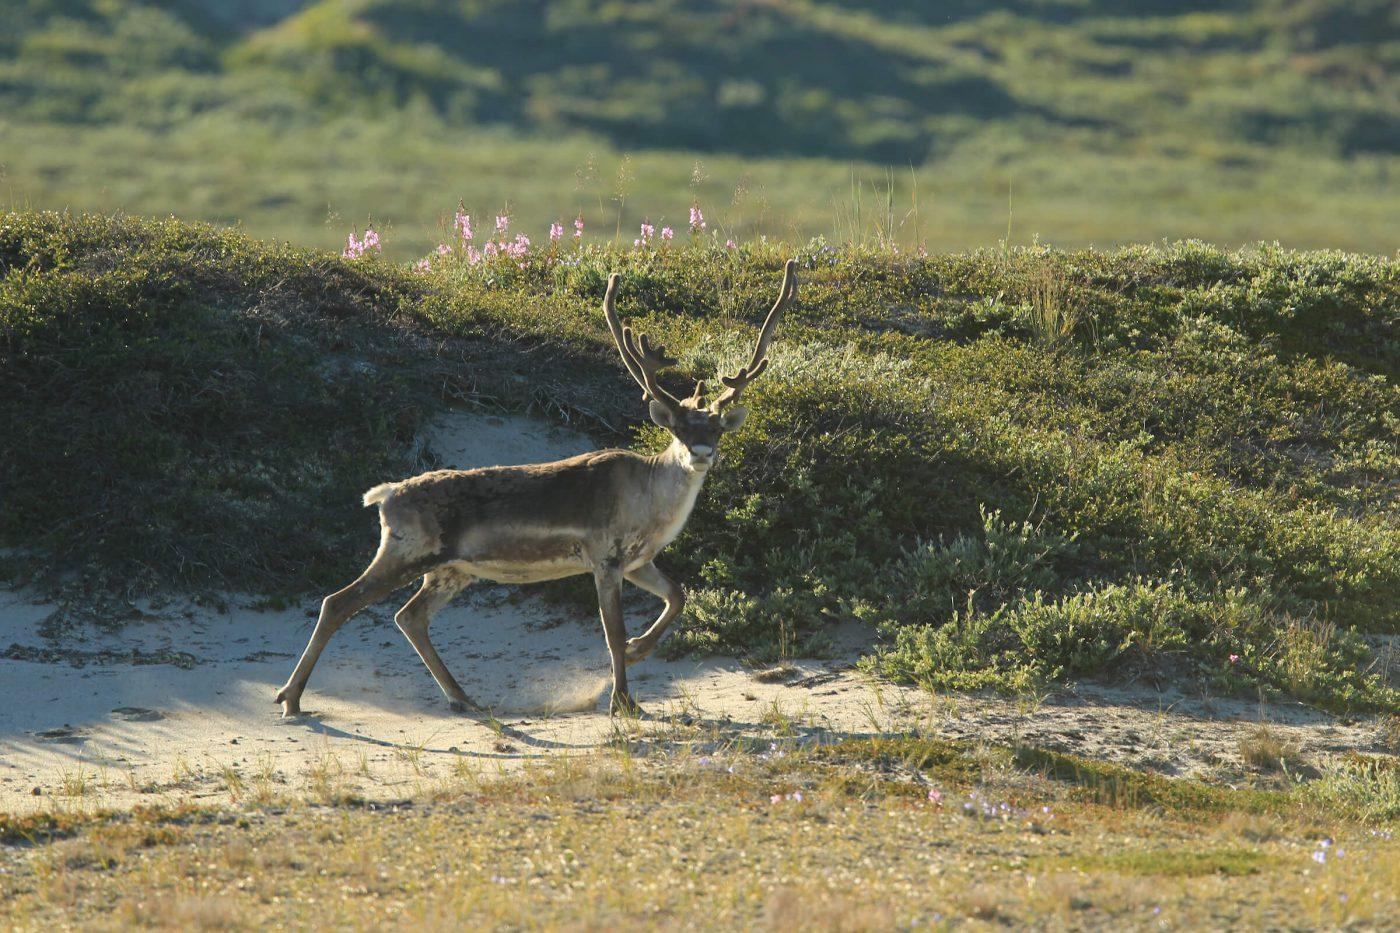 Reindeer on the beach in summer, by Klaus Eskildsen